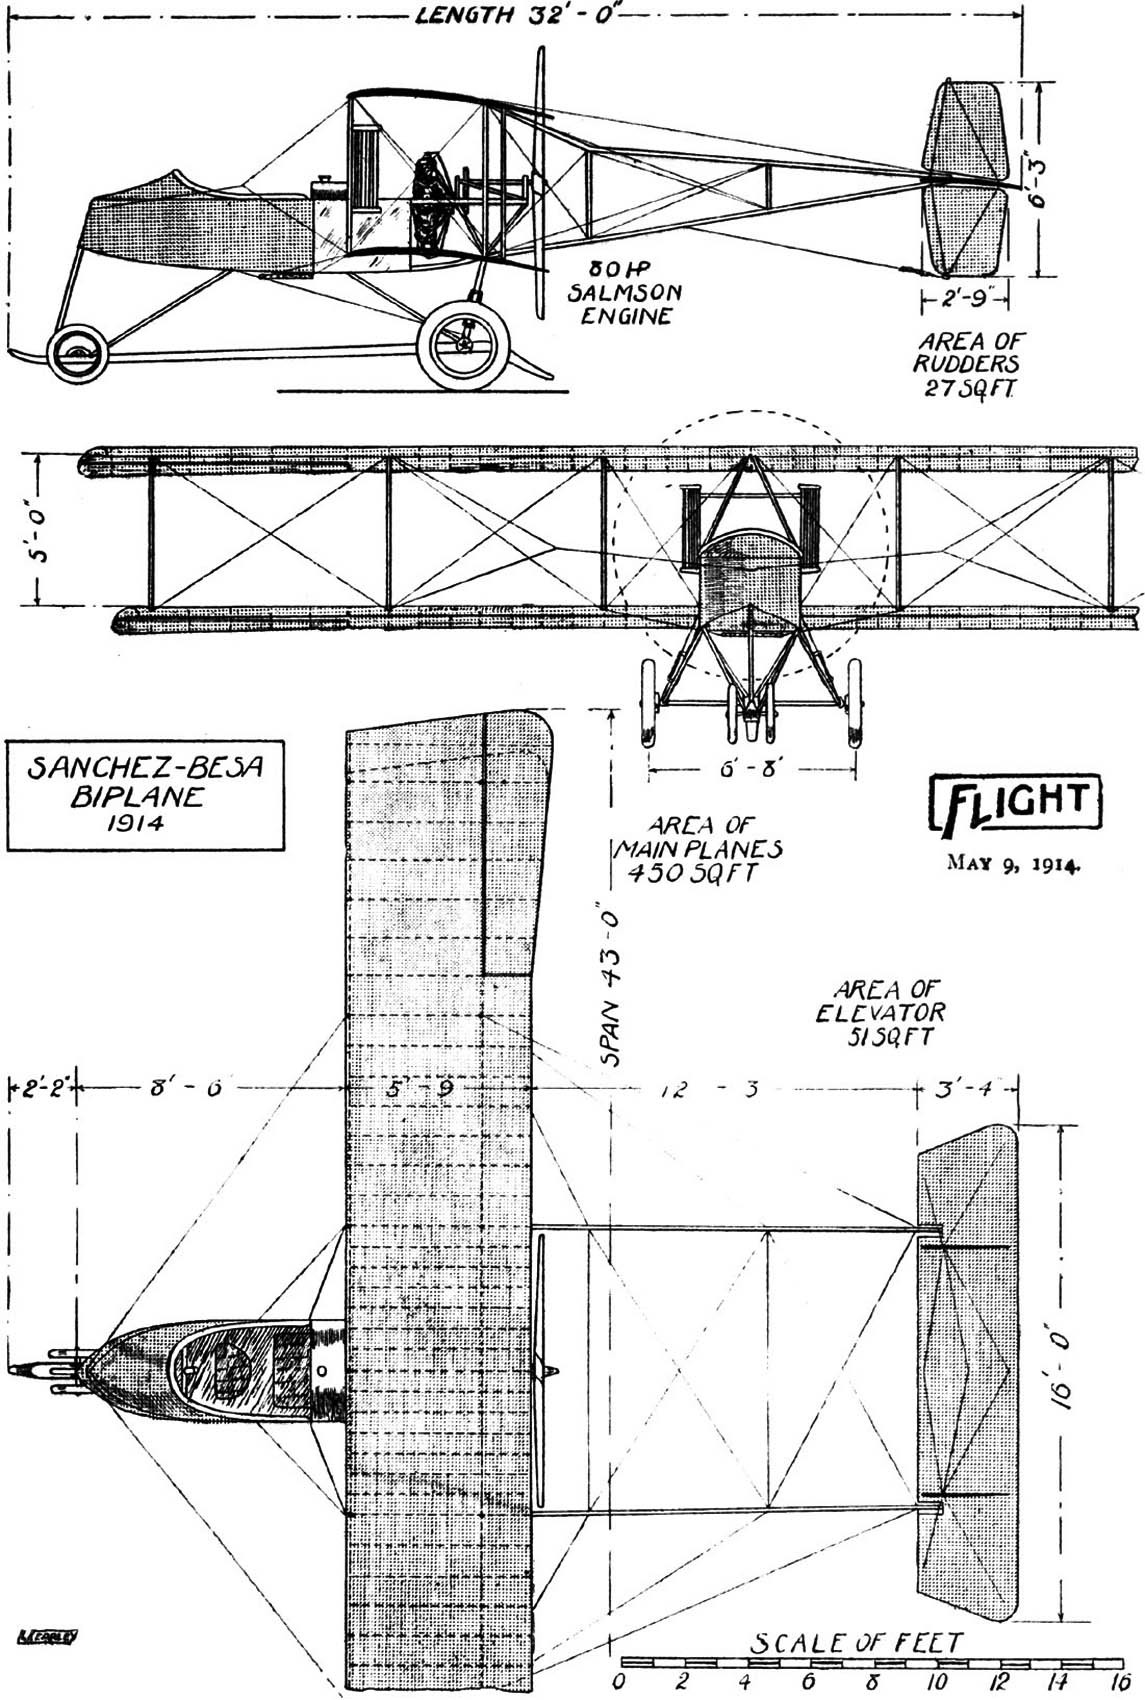 Artstation Sanchez Besa 80hp Biplane Camilo Rojas 572 Hemi Engine Diagram